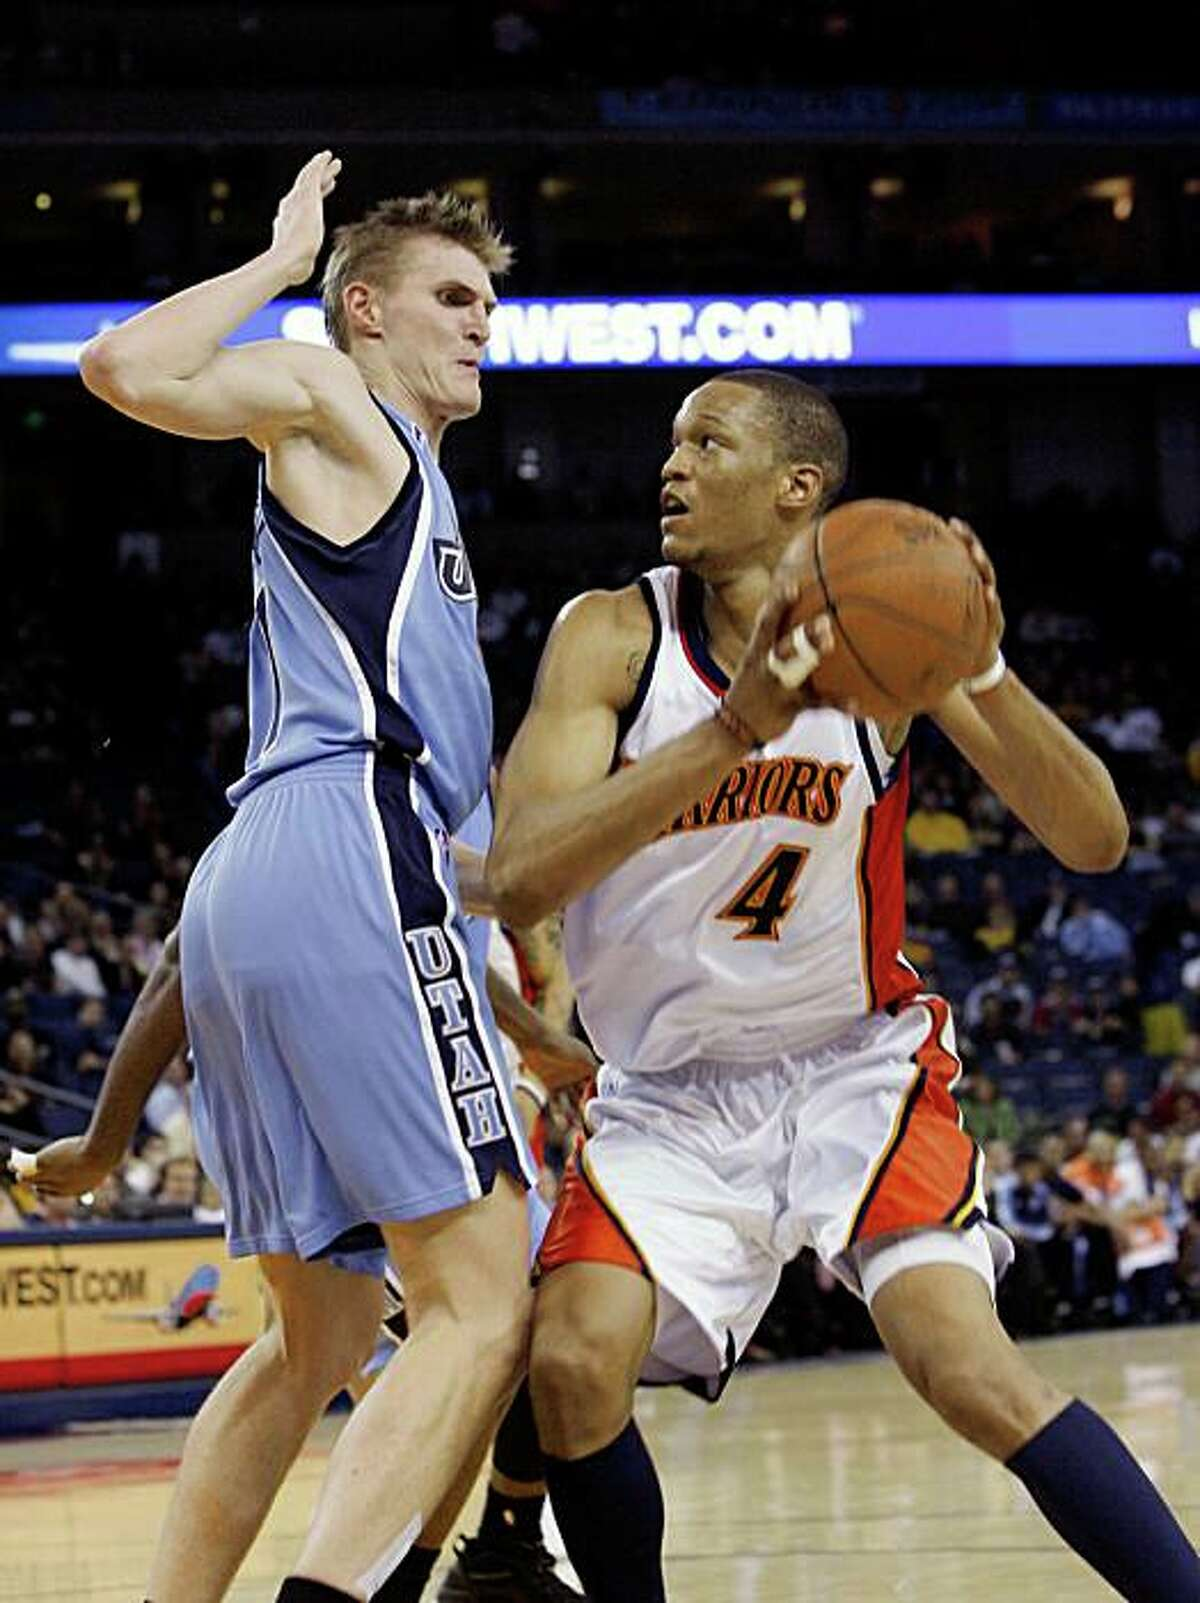 Golden State Warriors guard Anthony Randolph (4), right, goes up for a shot against Utah Jazz forward Andrei Kirilenko (47), left, during a game at Oracle Arena in Oakland, Calif., on Sunday, March 1, 2009. The Jazz beat the Warriors 112-104.